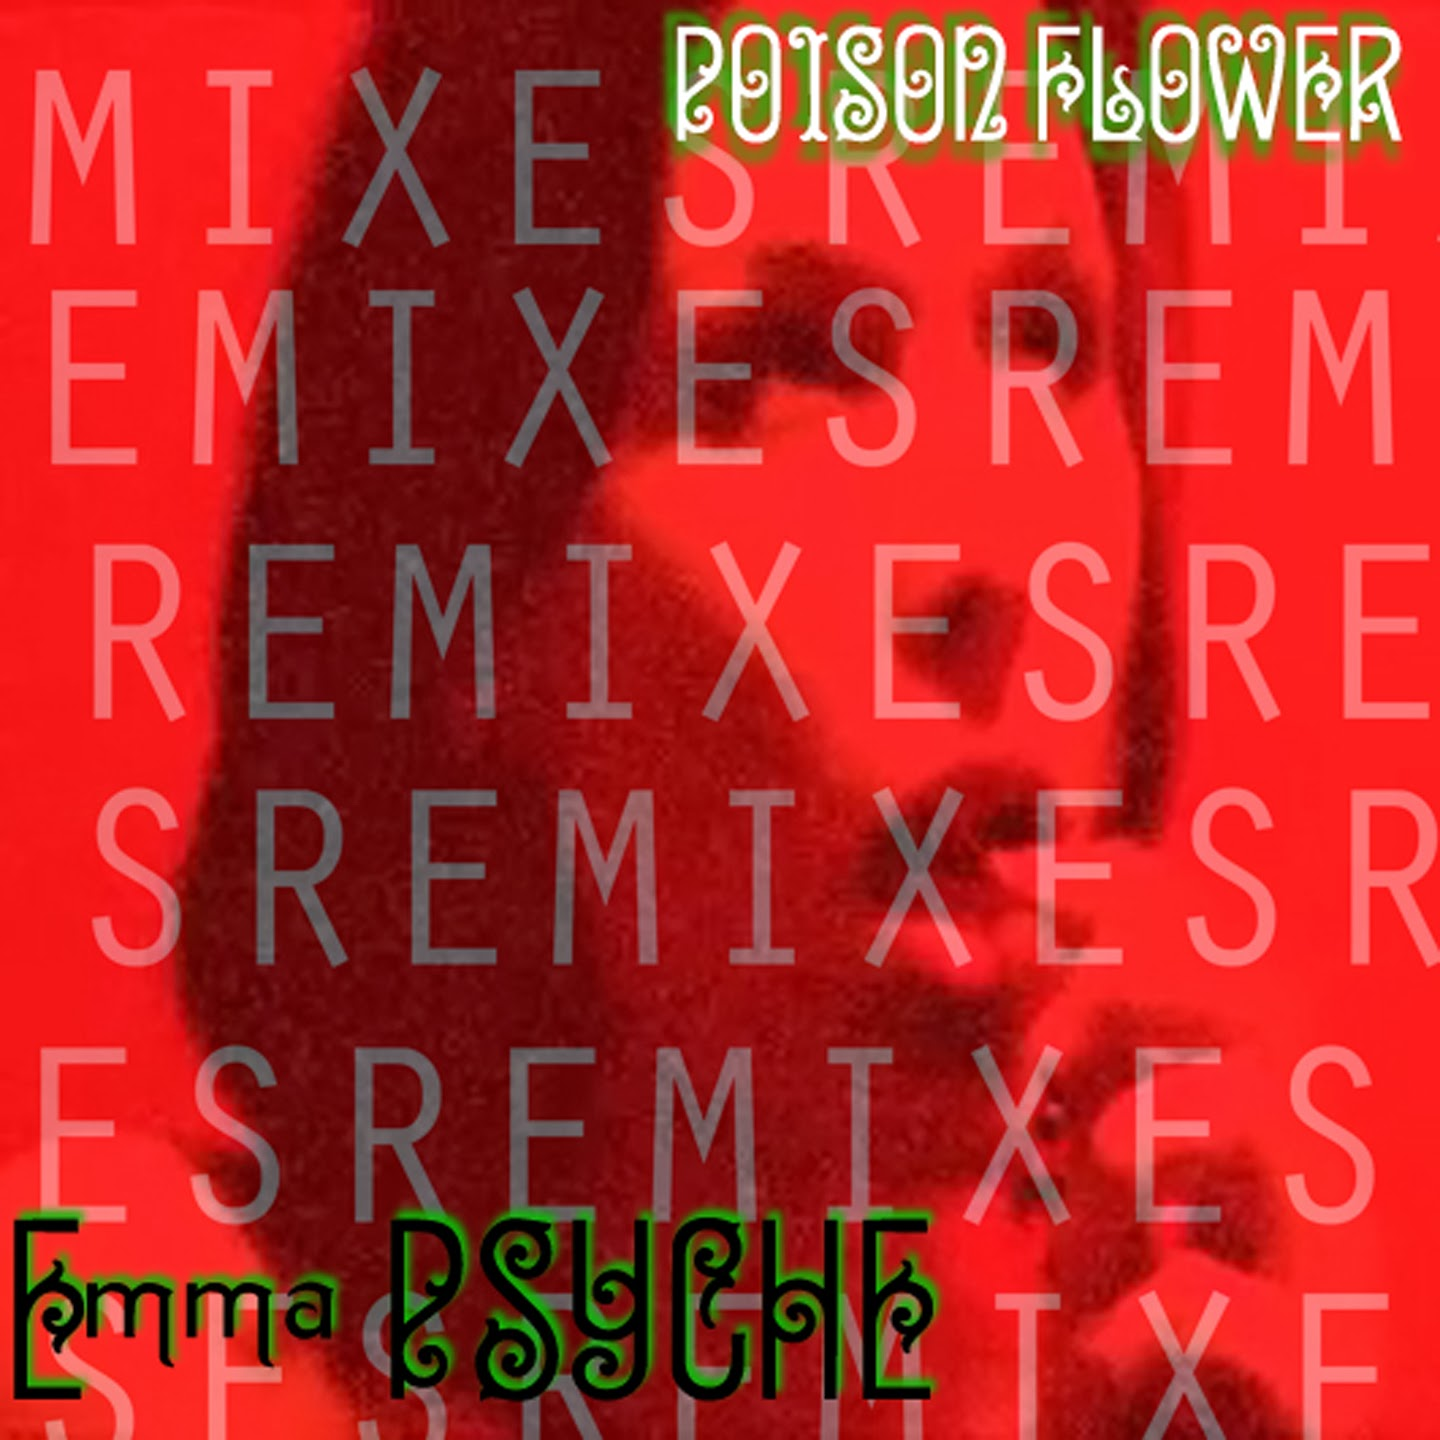 https://itunes.apple.com/fr/album/poison-flower-remixes-ep/id822258082